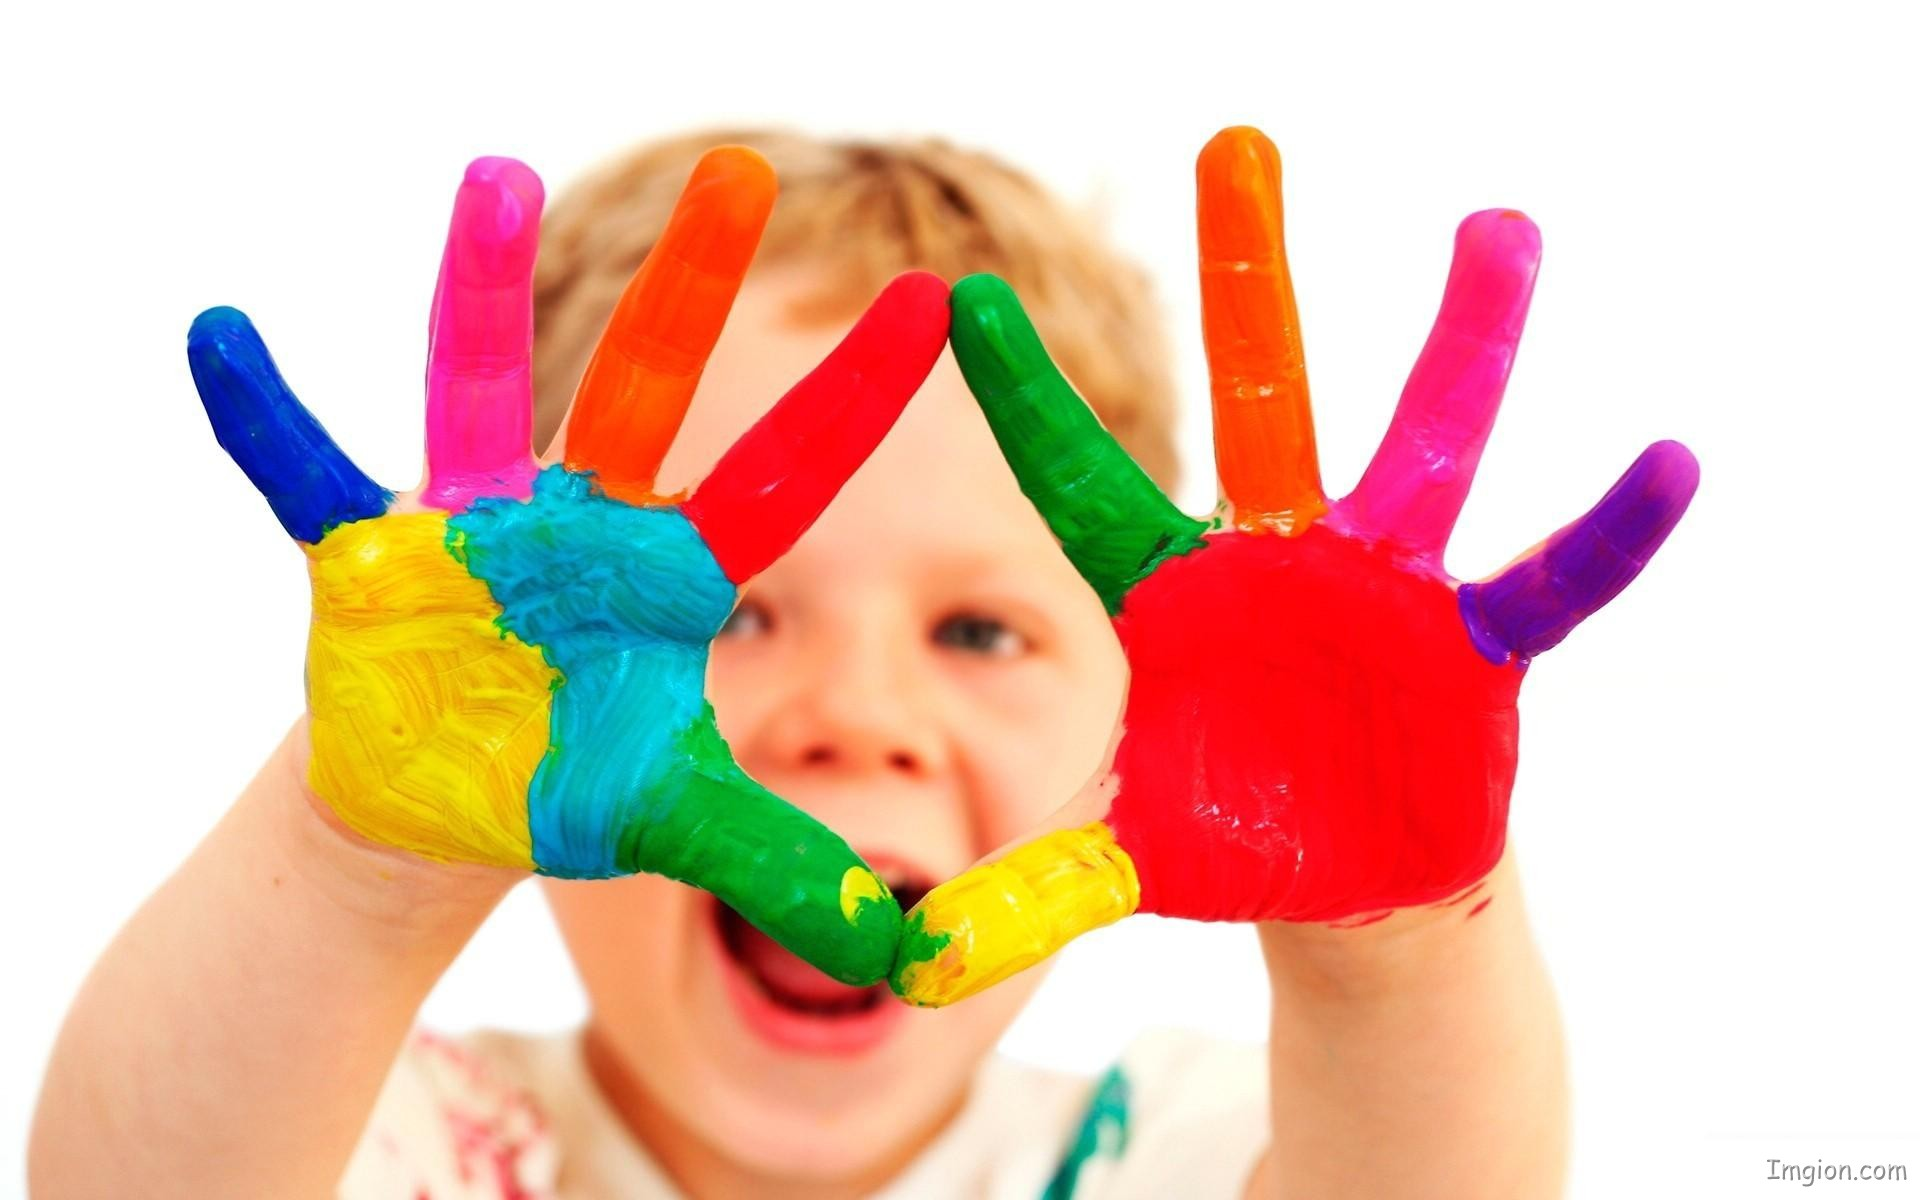 Colourful-Hands-